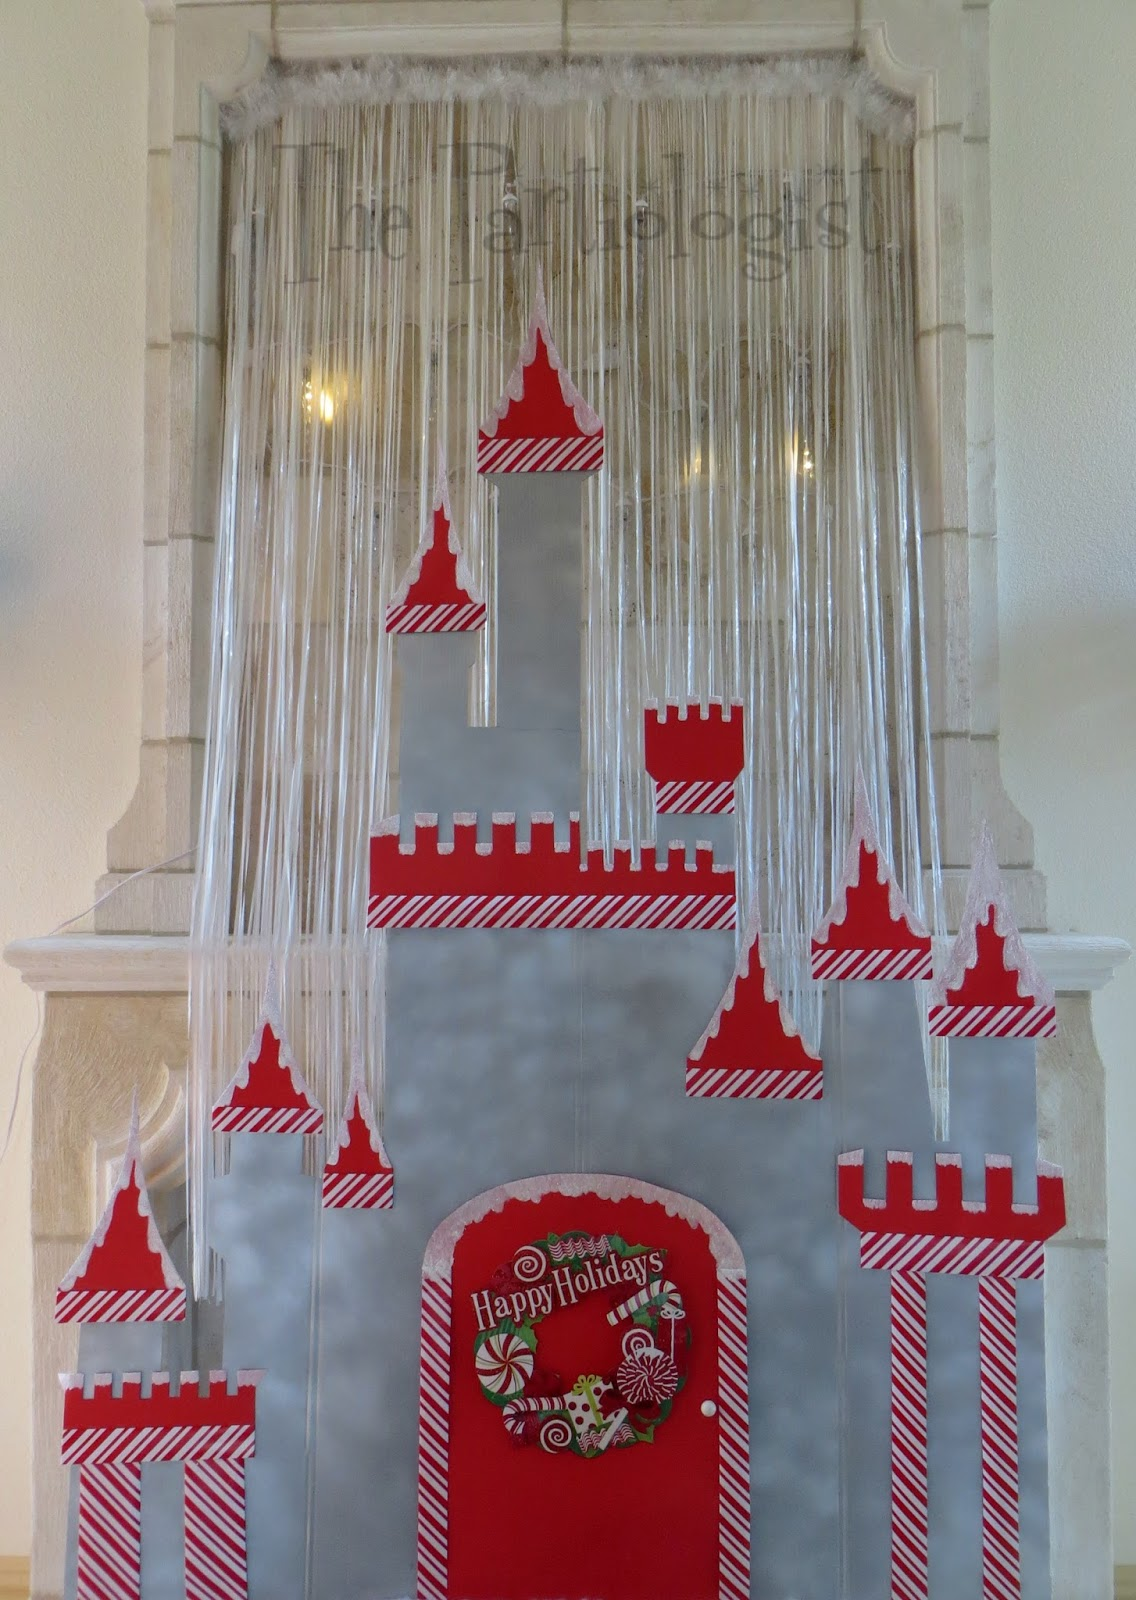 behind the castle i hung dripping icicle lights to resemble snow falling behind the castle i covered the cord with a white plastic door banner and topped